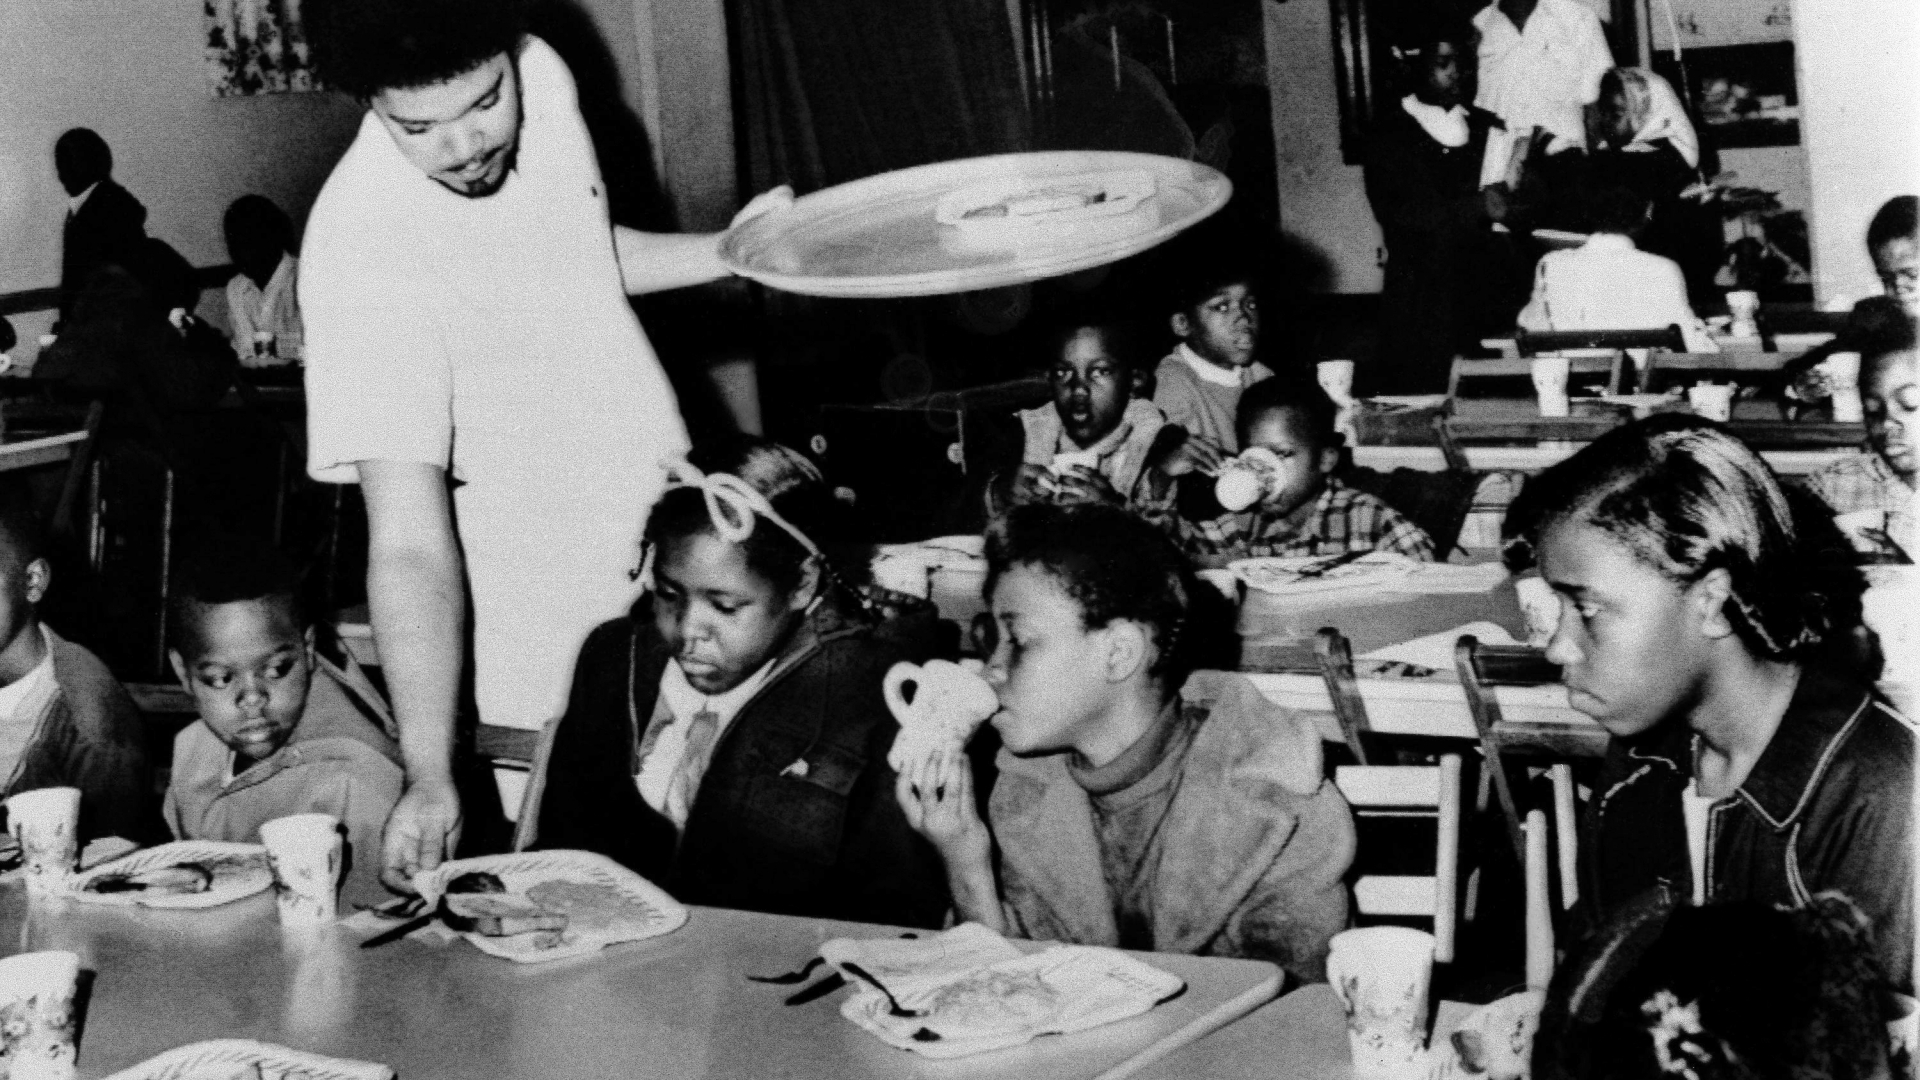 Bill Whitfield, member of the Black Panther chapter in Kansas City, serving free breakfast to children before they go to school. (Credit: William P. Straeter/AP Photo)